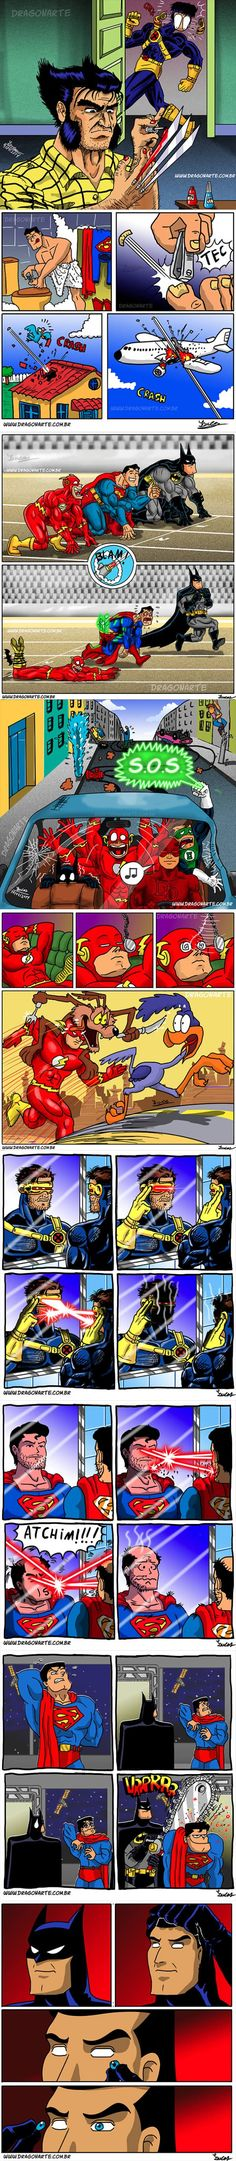 Funny Superhero Comics